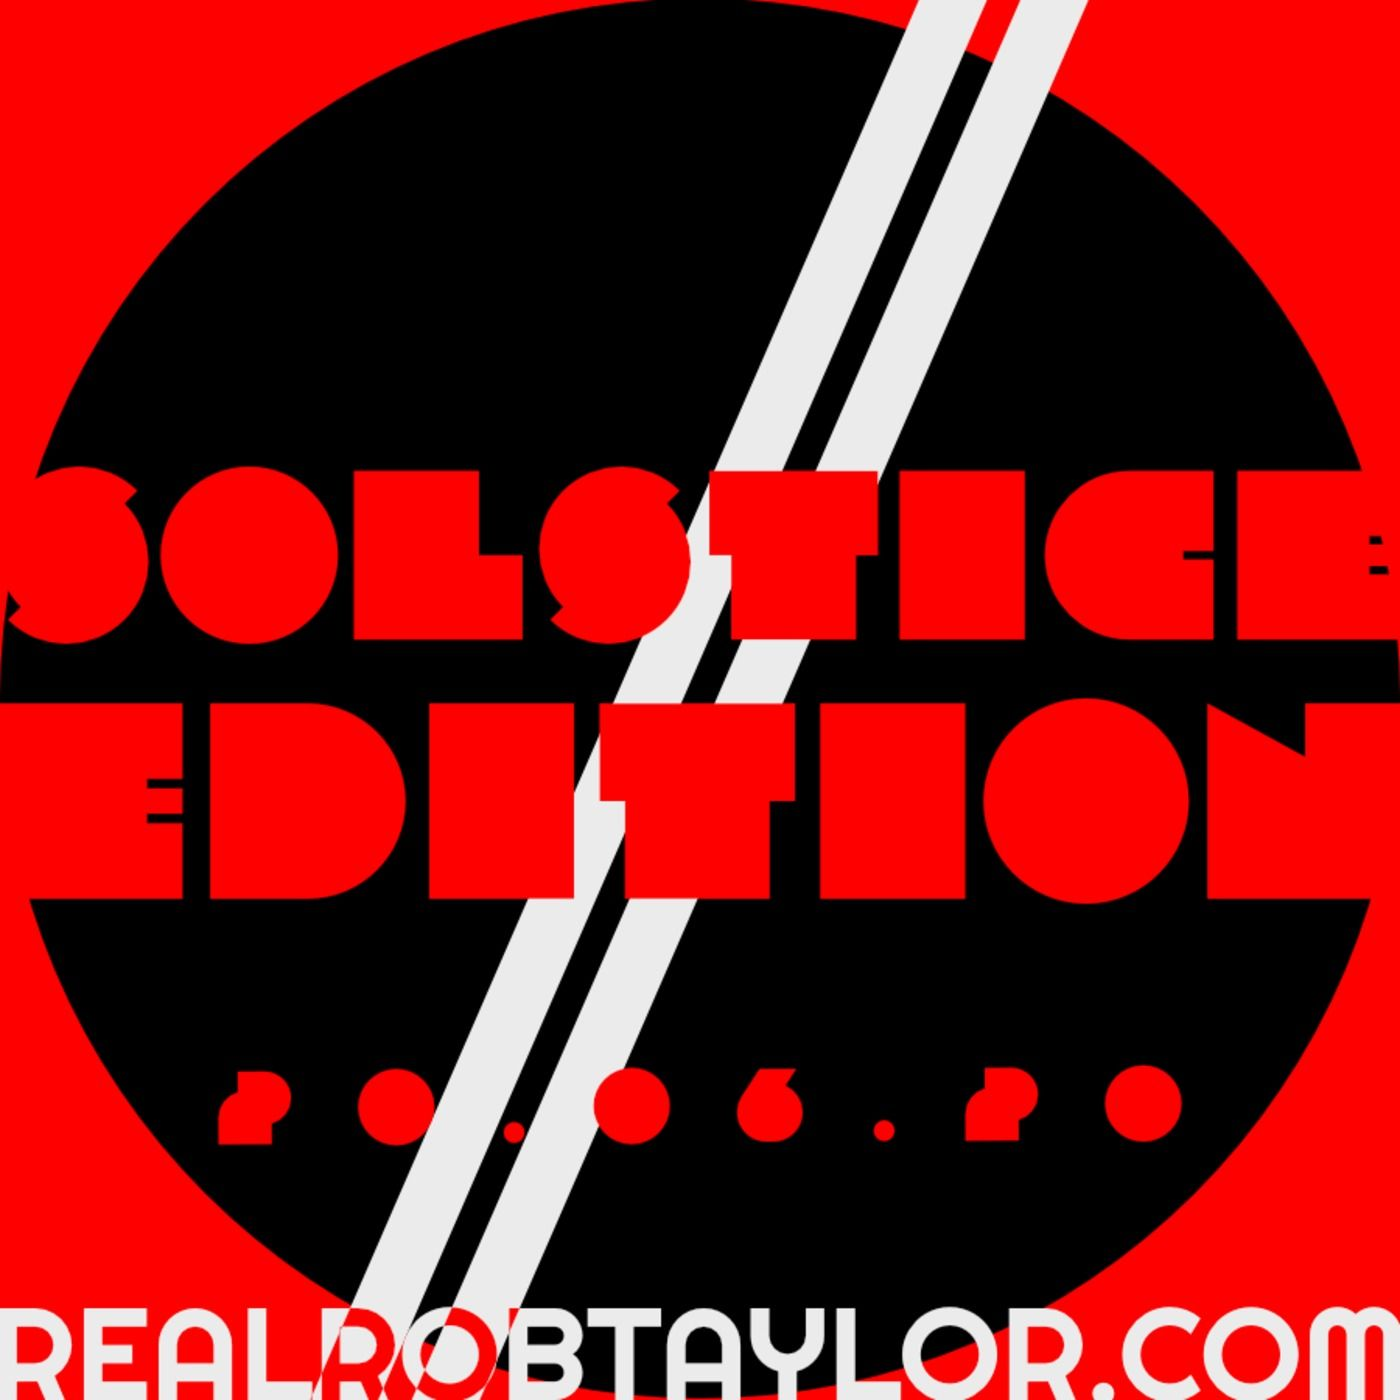 The Real Rob Taylor Episode 11 | Solstice Edition